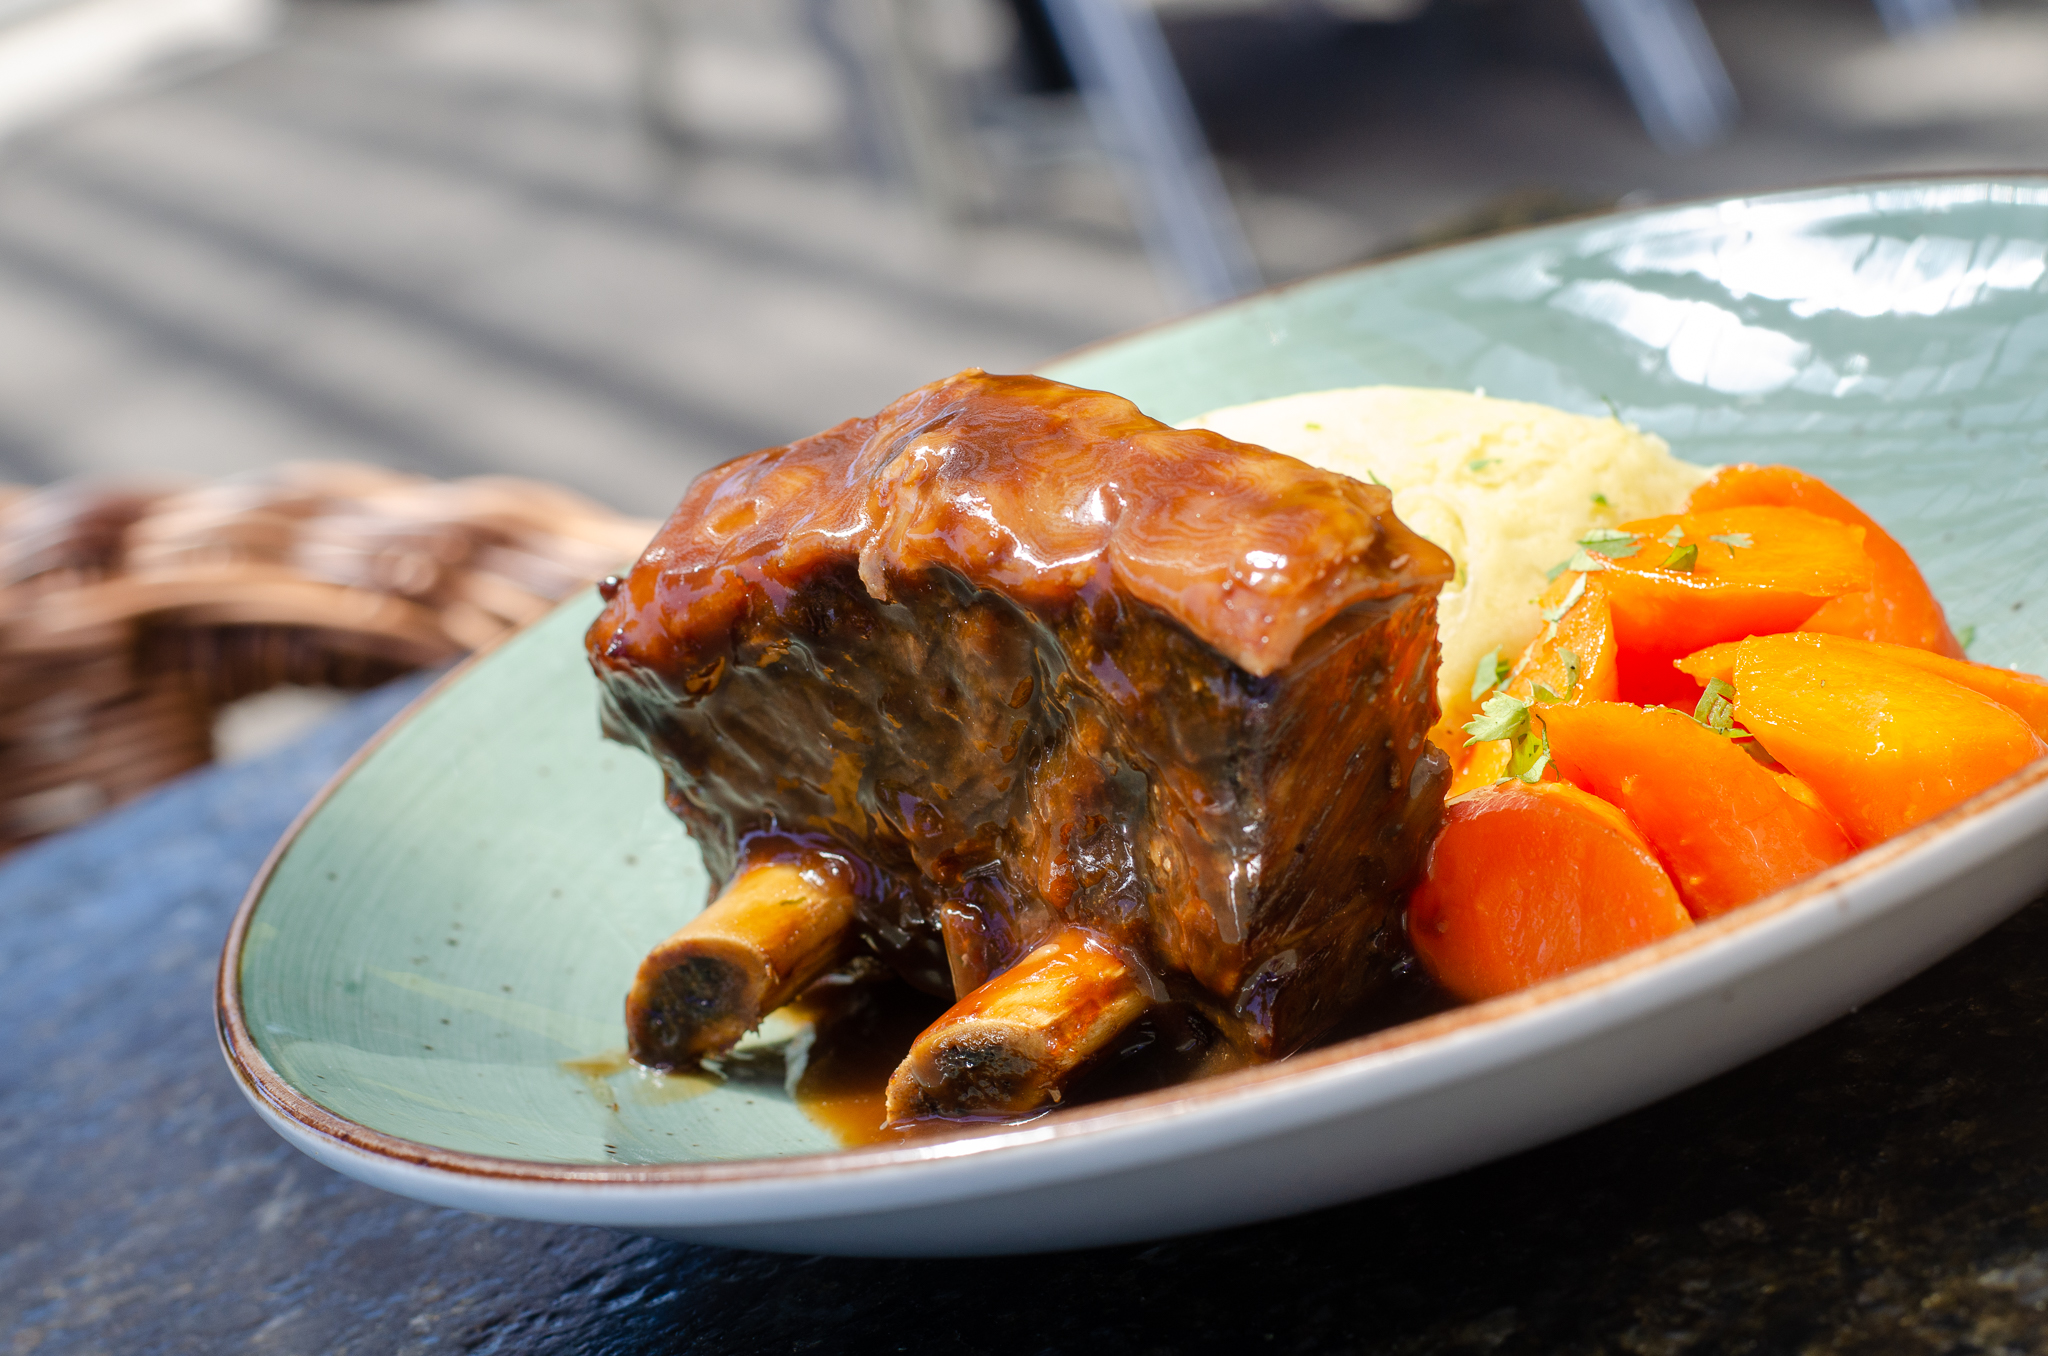 Braised Beef Short Ribs from Parks & Rec in Windsor, Ontario.